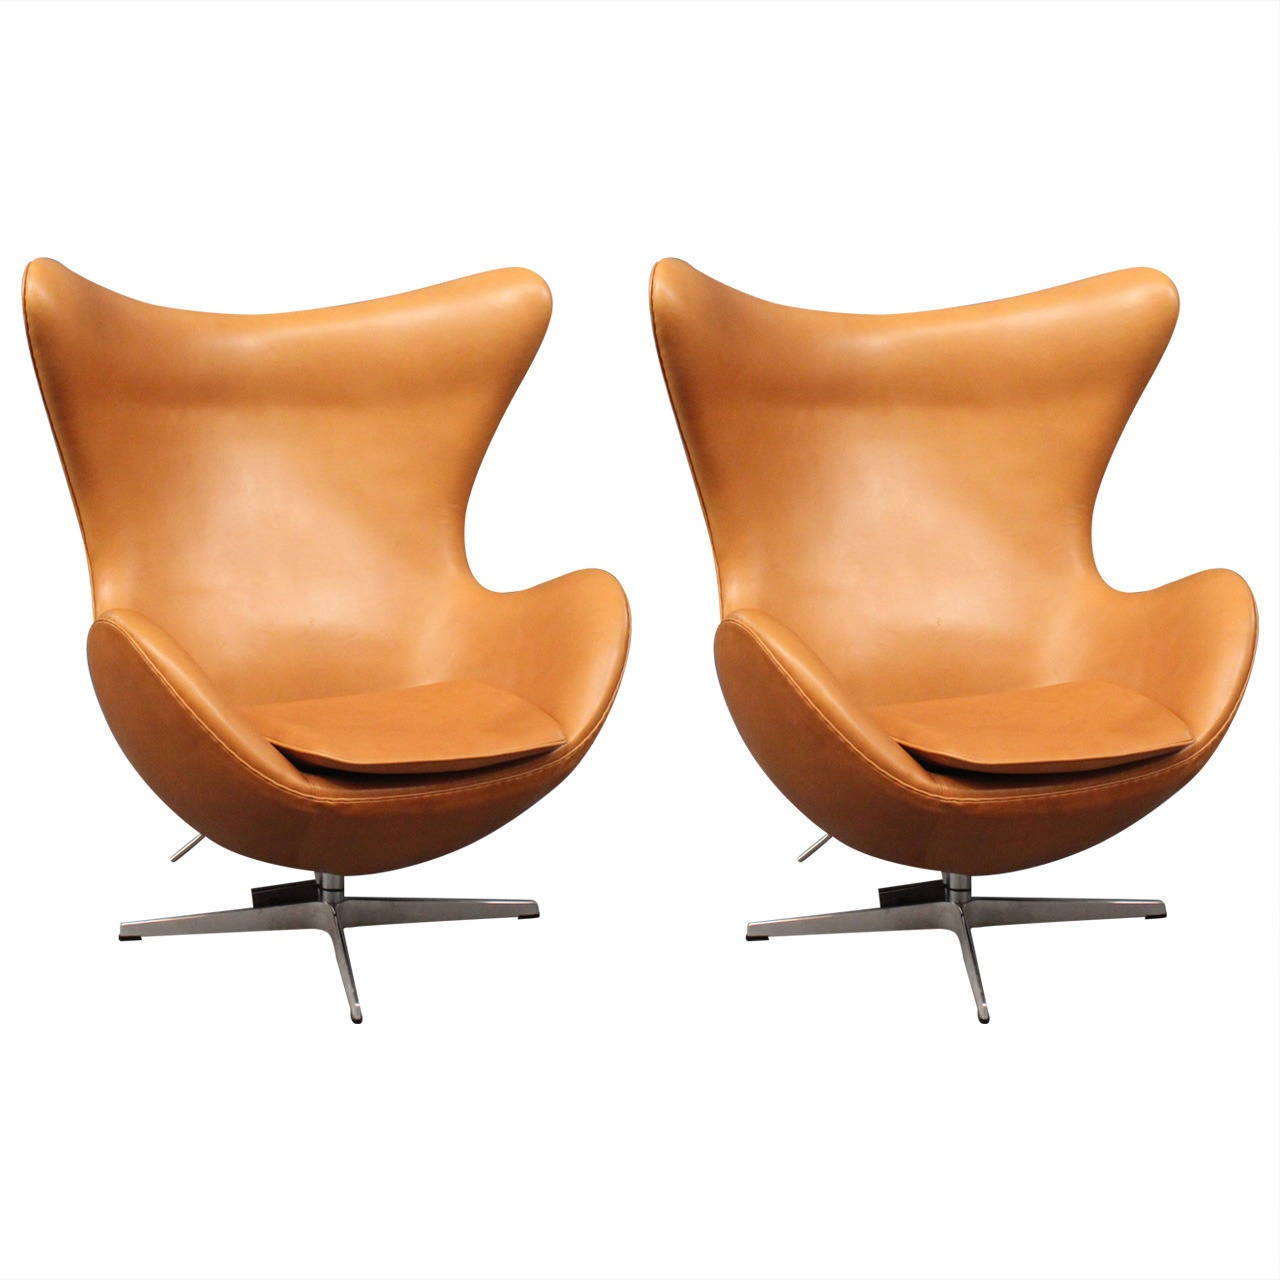 Egg Chairs Quotegg Quot Chair Designed By Arne Jacobsen 1958 Manufactured